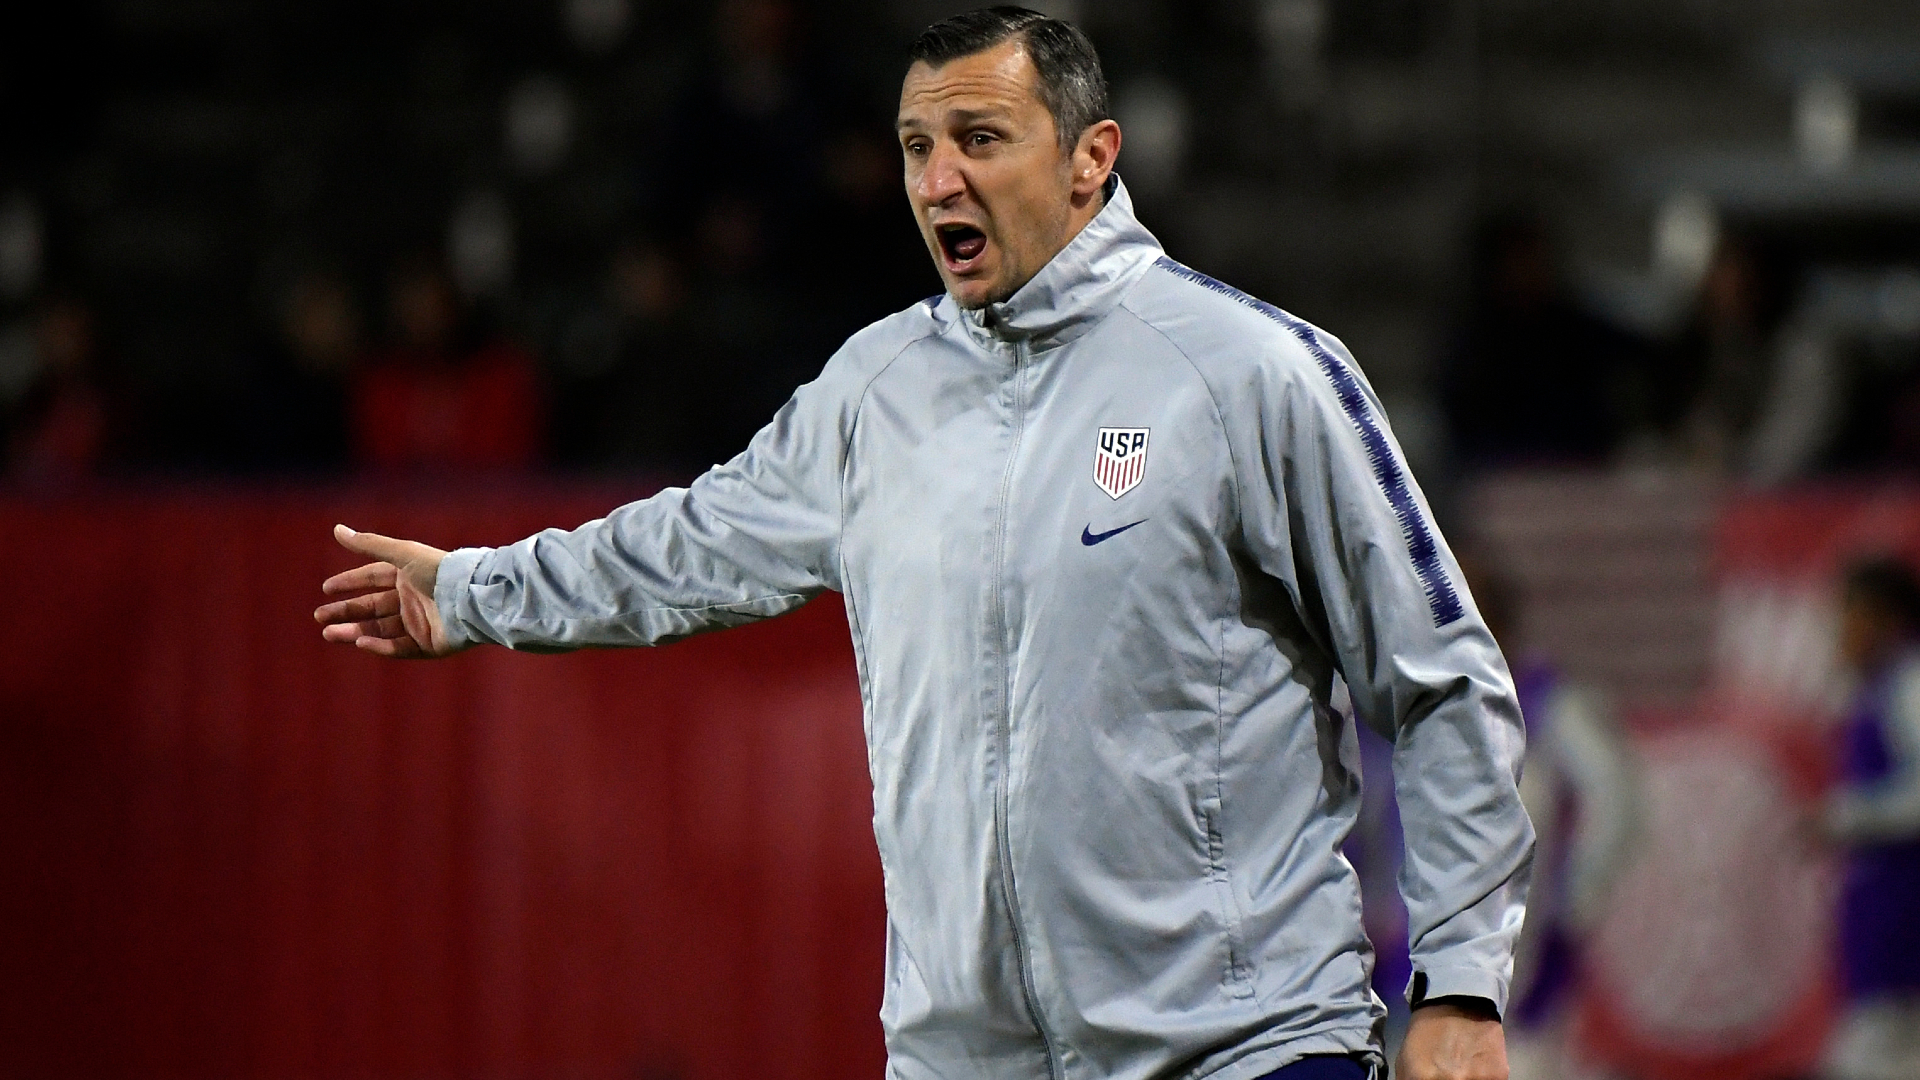 USWNT coach Andonovski hints IOC are set to expand roster sizes for Tokyo Olympics